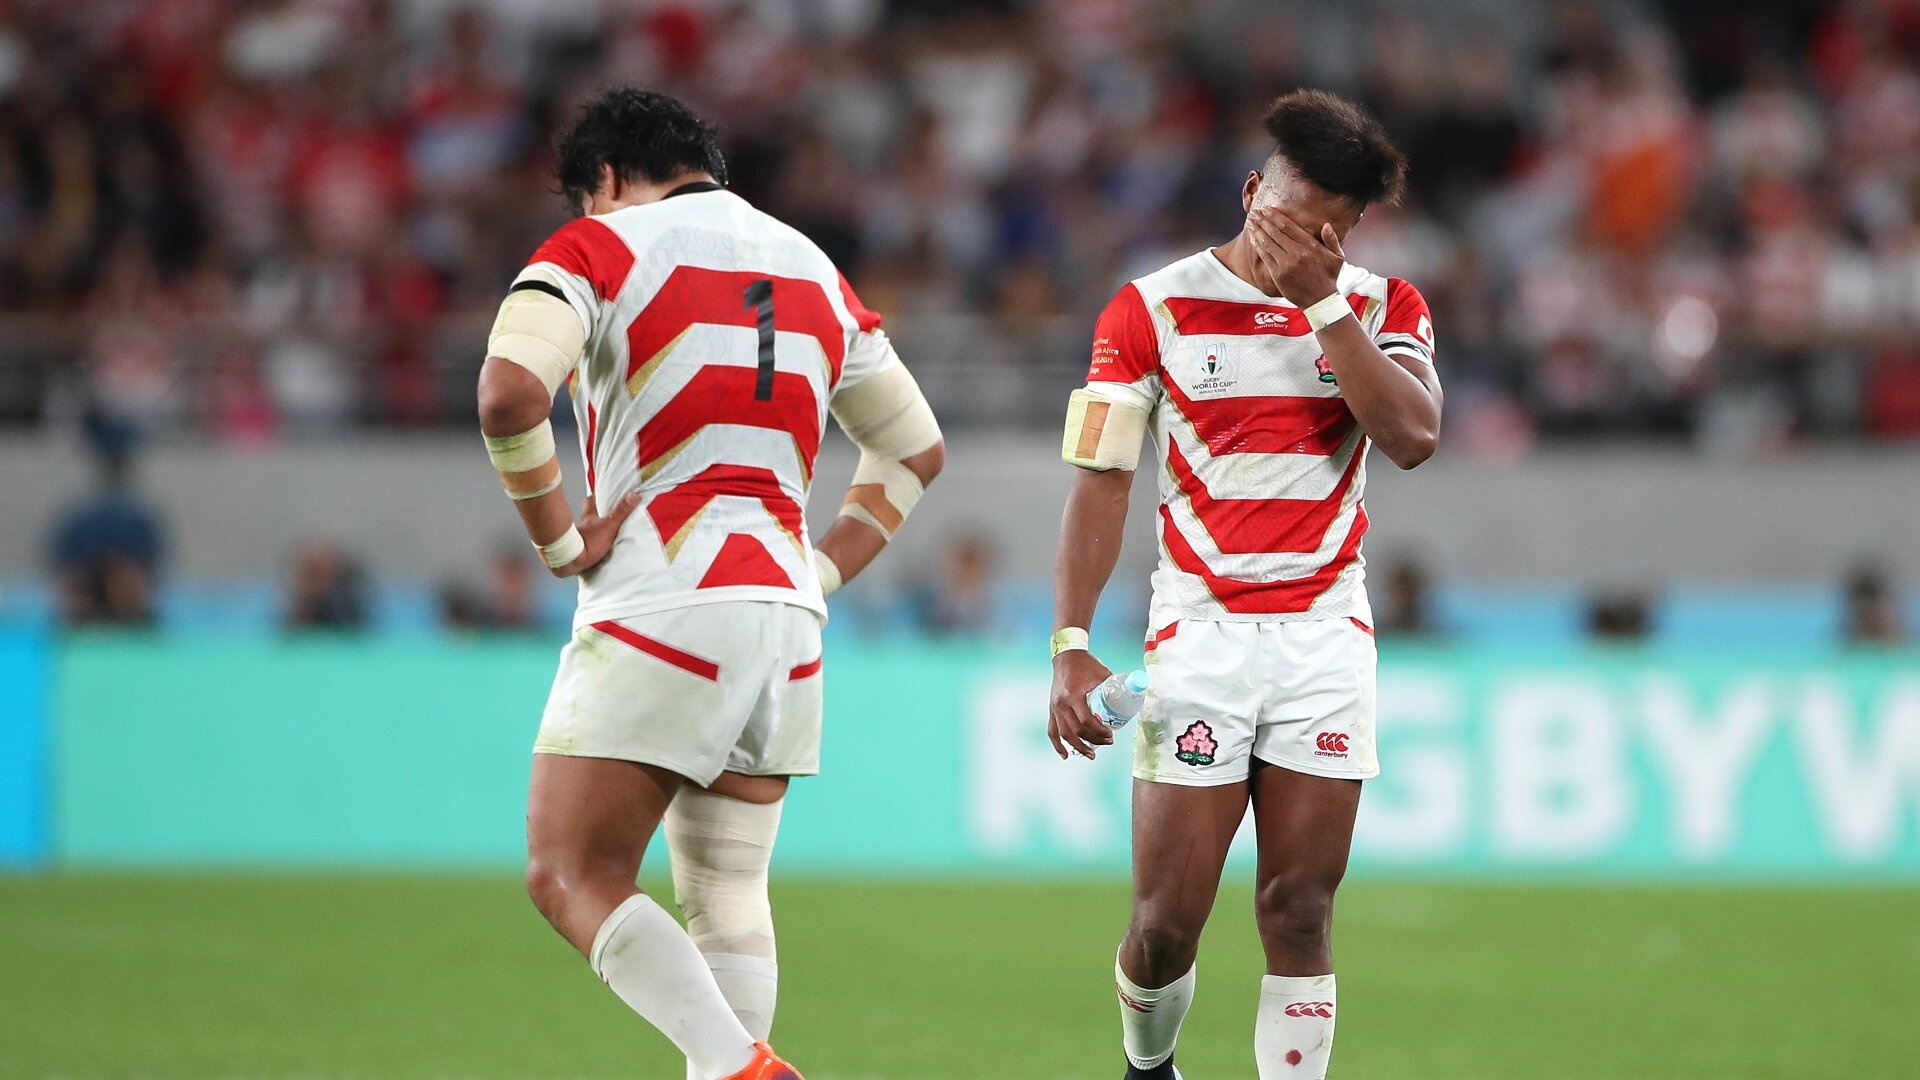 Japan's World Cup dream over as powerful South Africa prove a step too far